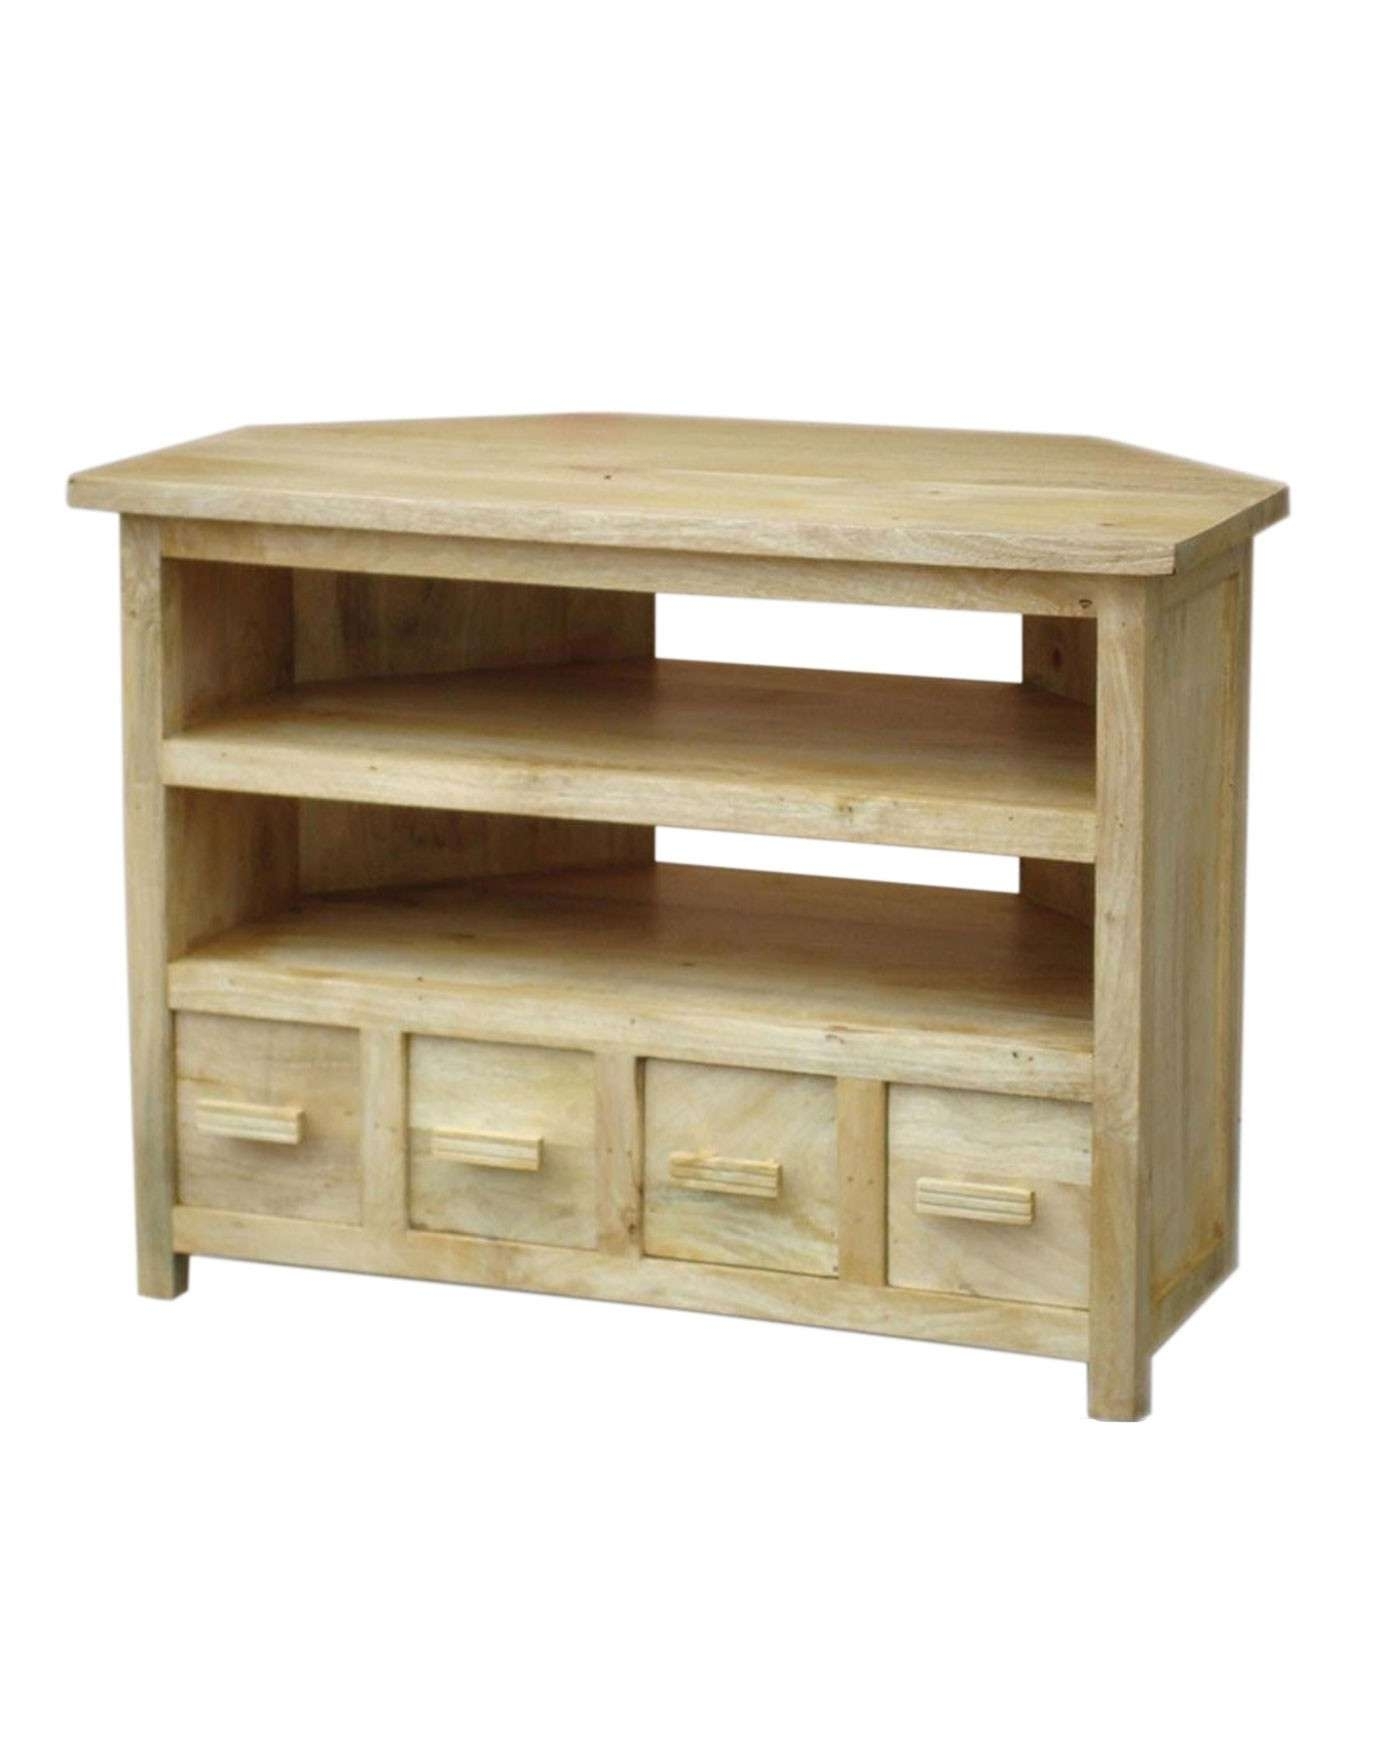 Mangat Tall Corner Tv Unit Oak Shade – Homescapes Throughout Wood Corner Tv Cabinets (View 13 of 20)